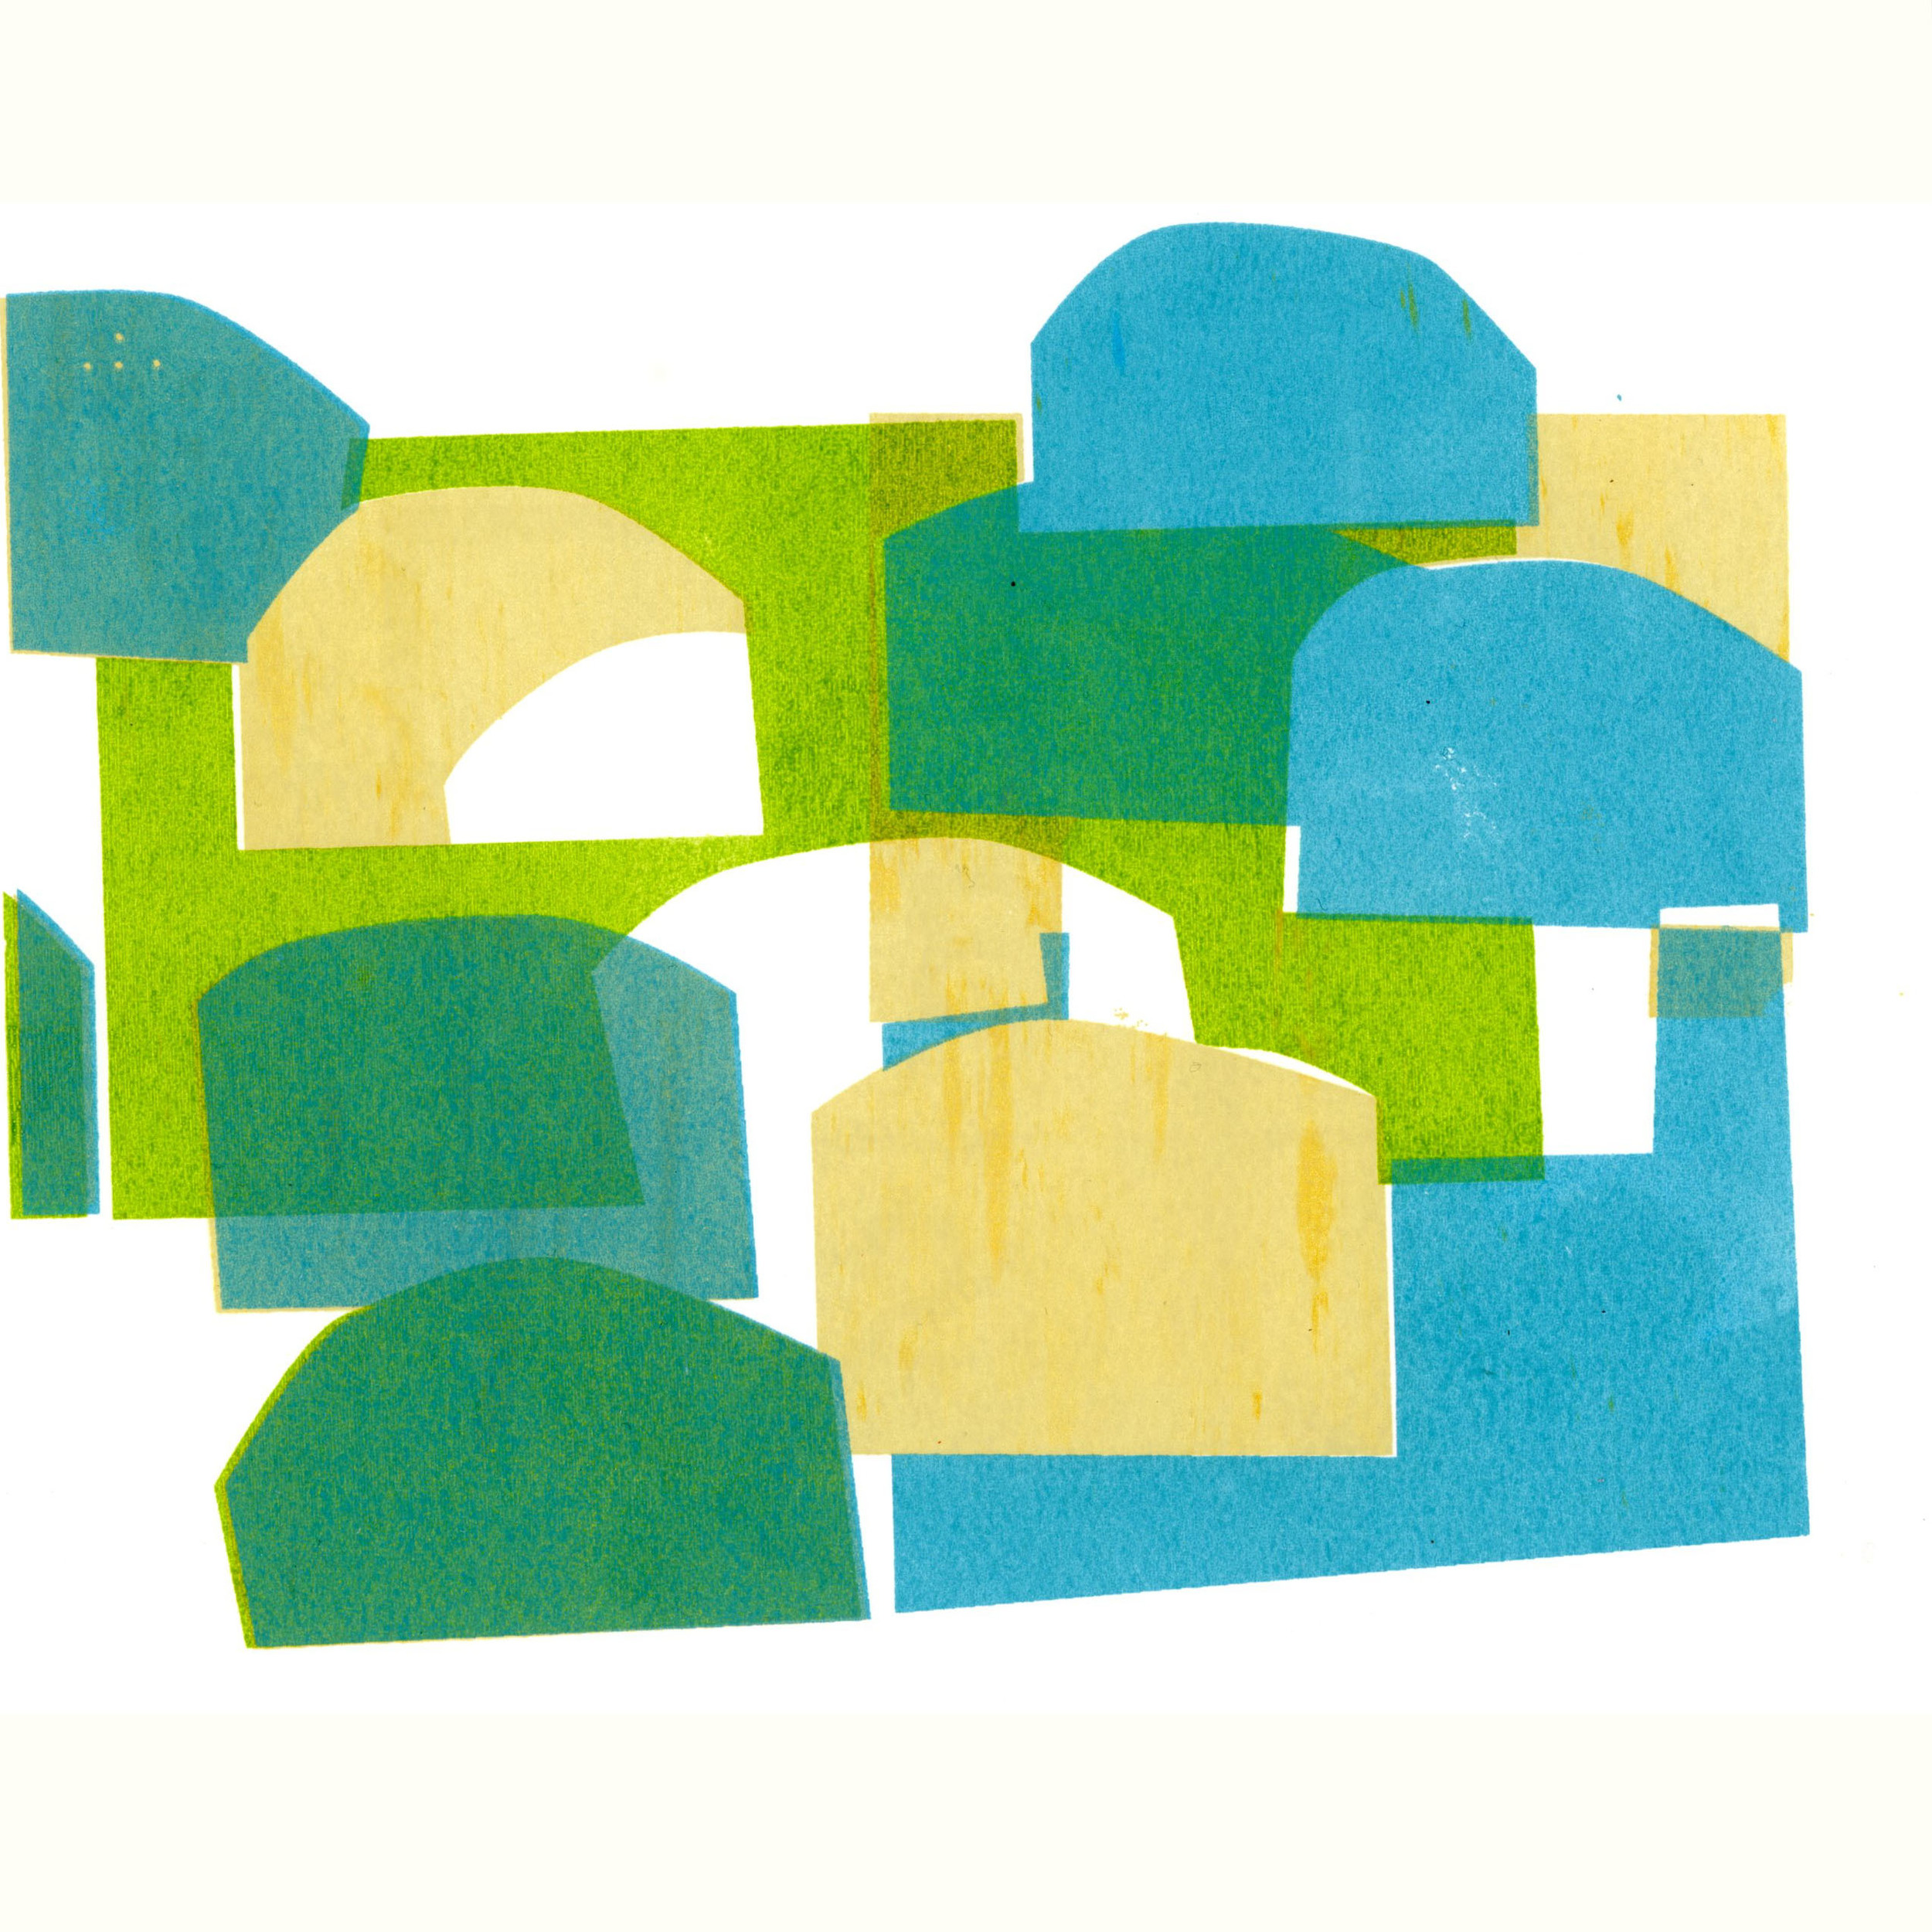 SP11 ,2015  8 x 8 inches on 11 x11 inch paper  screen print